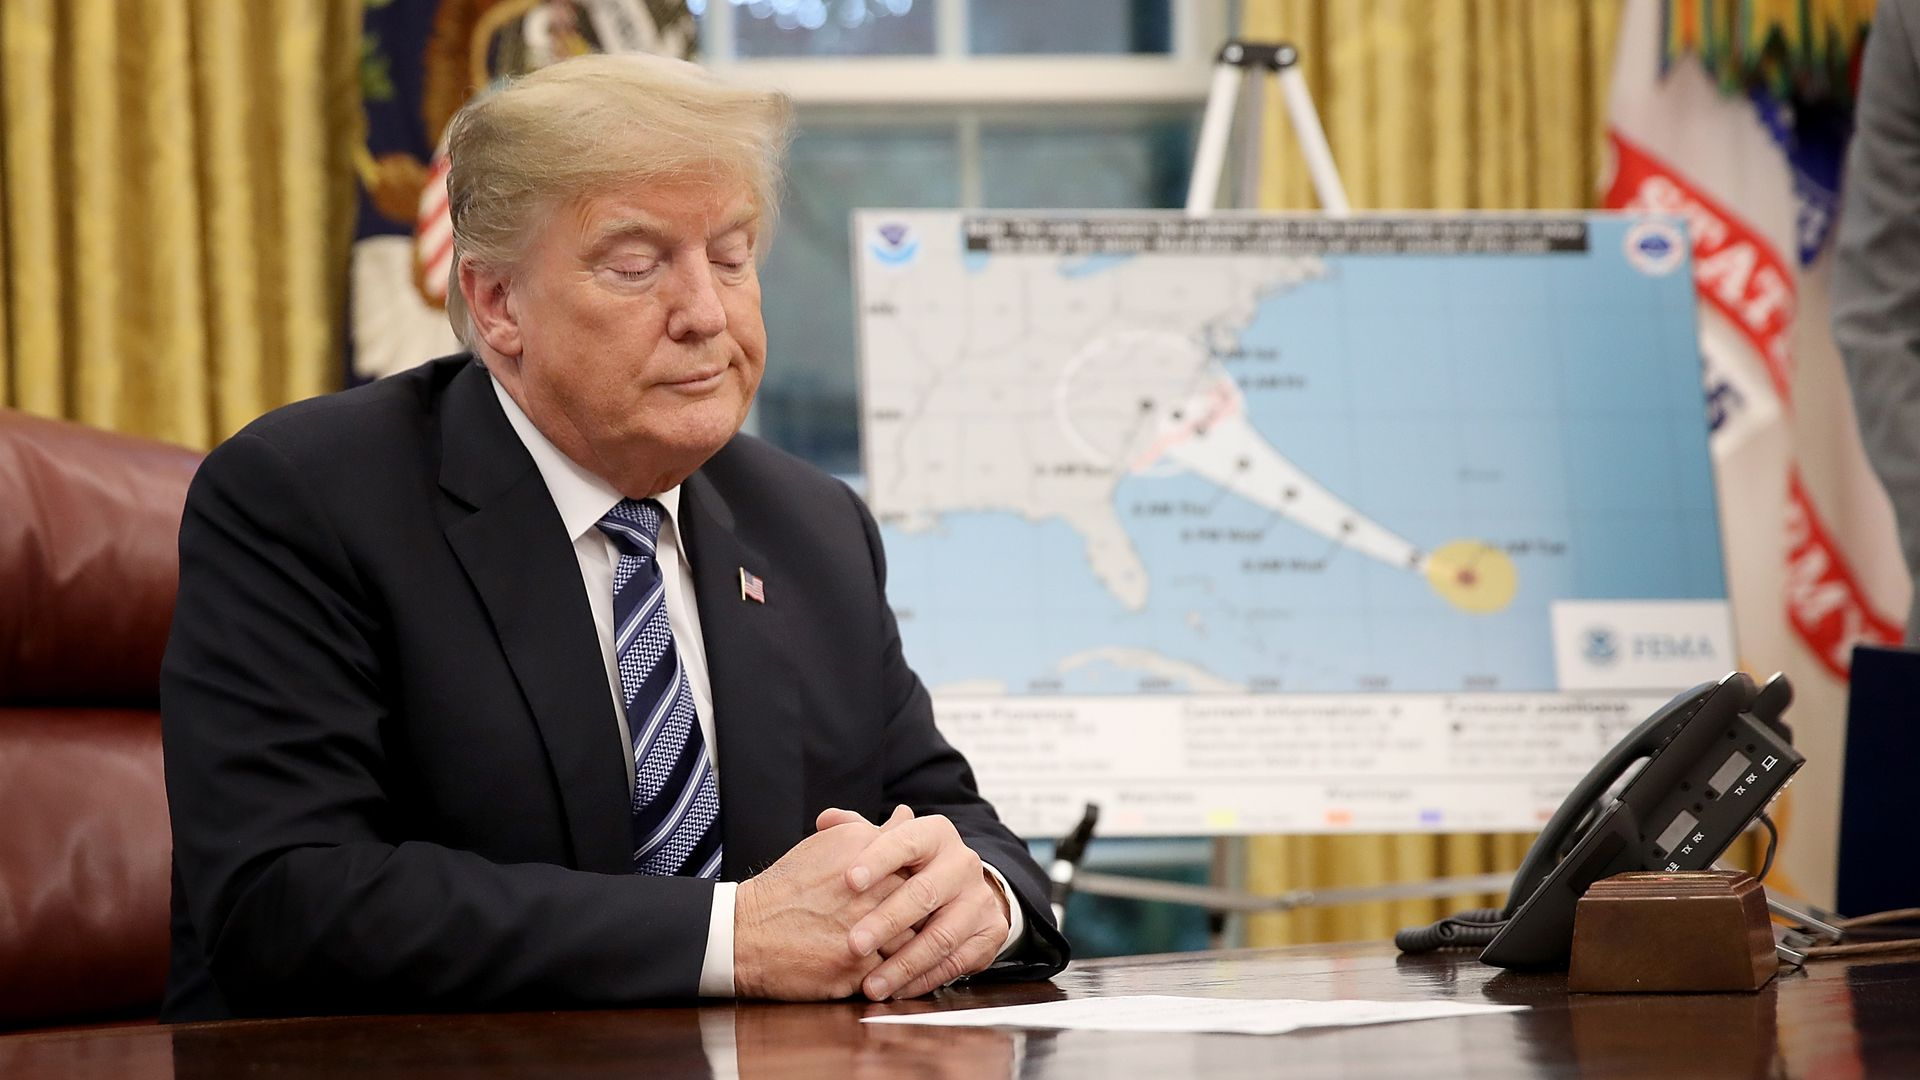 Trump sits as his desk during a meeting about Hurricane Florence